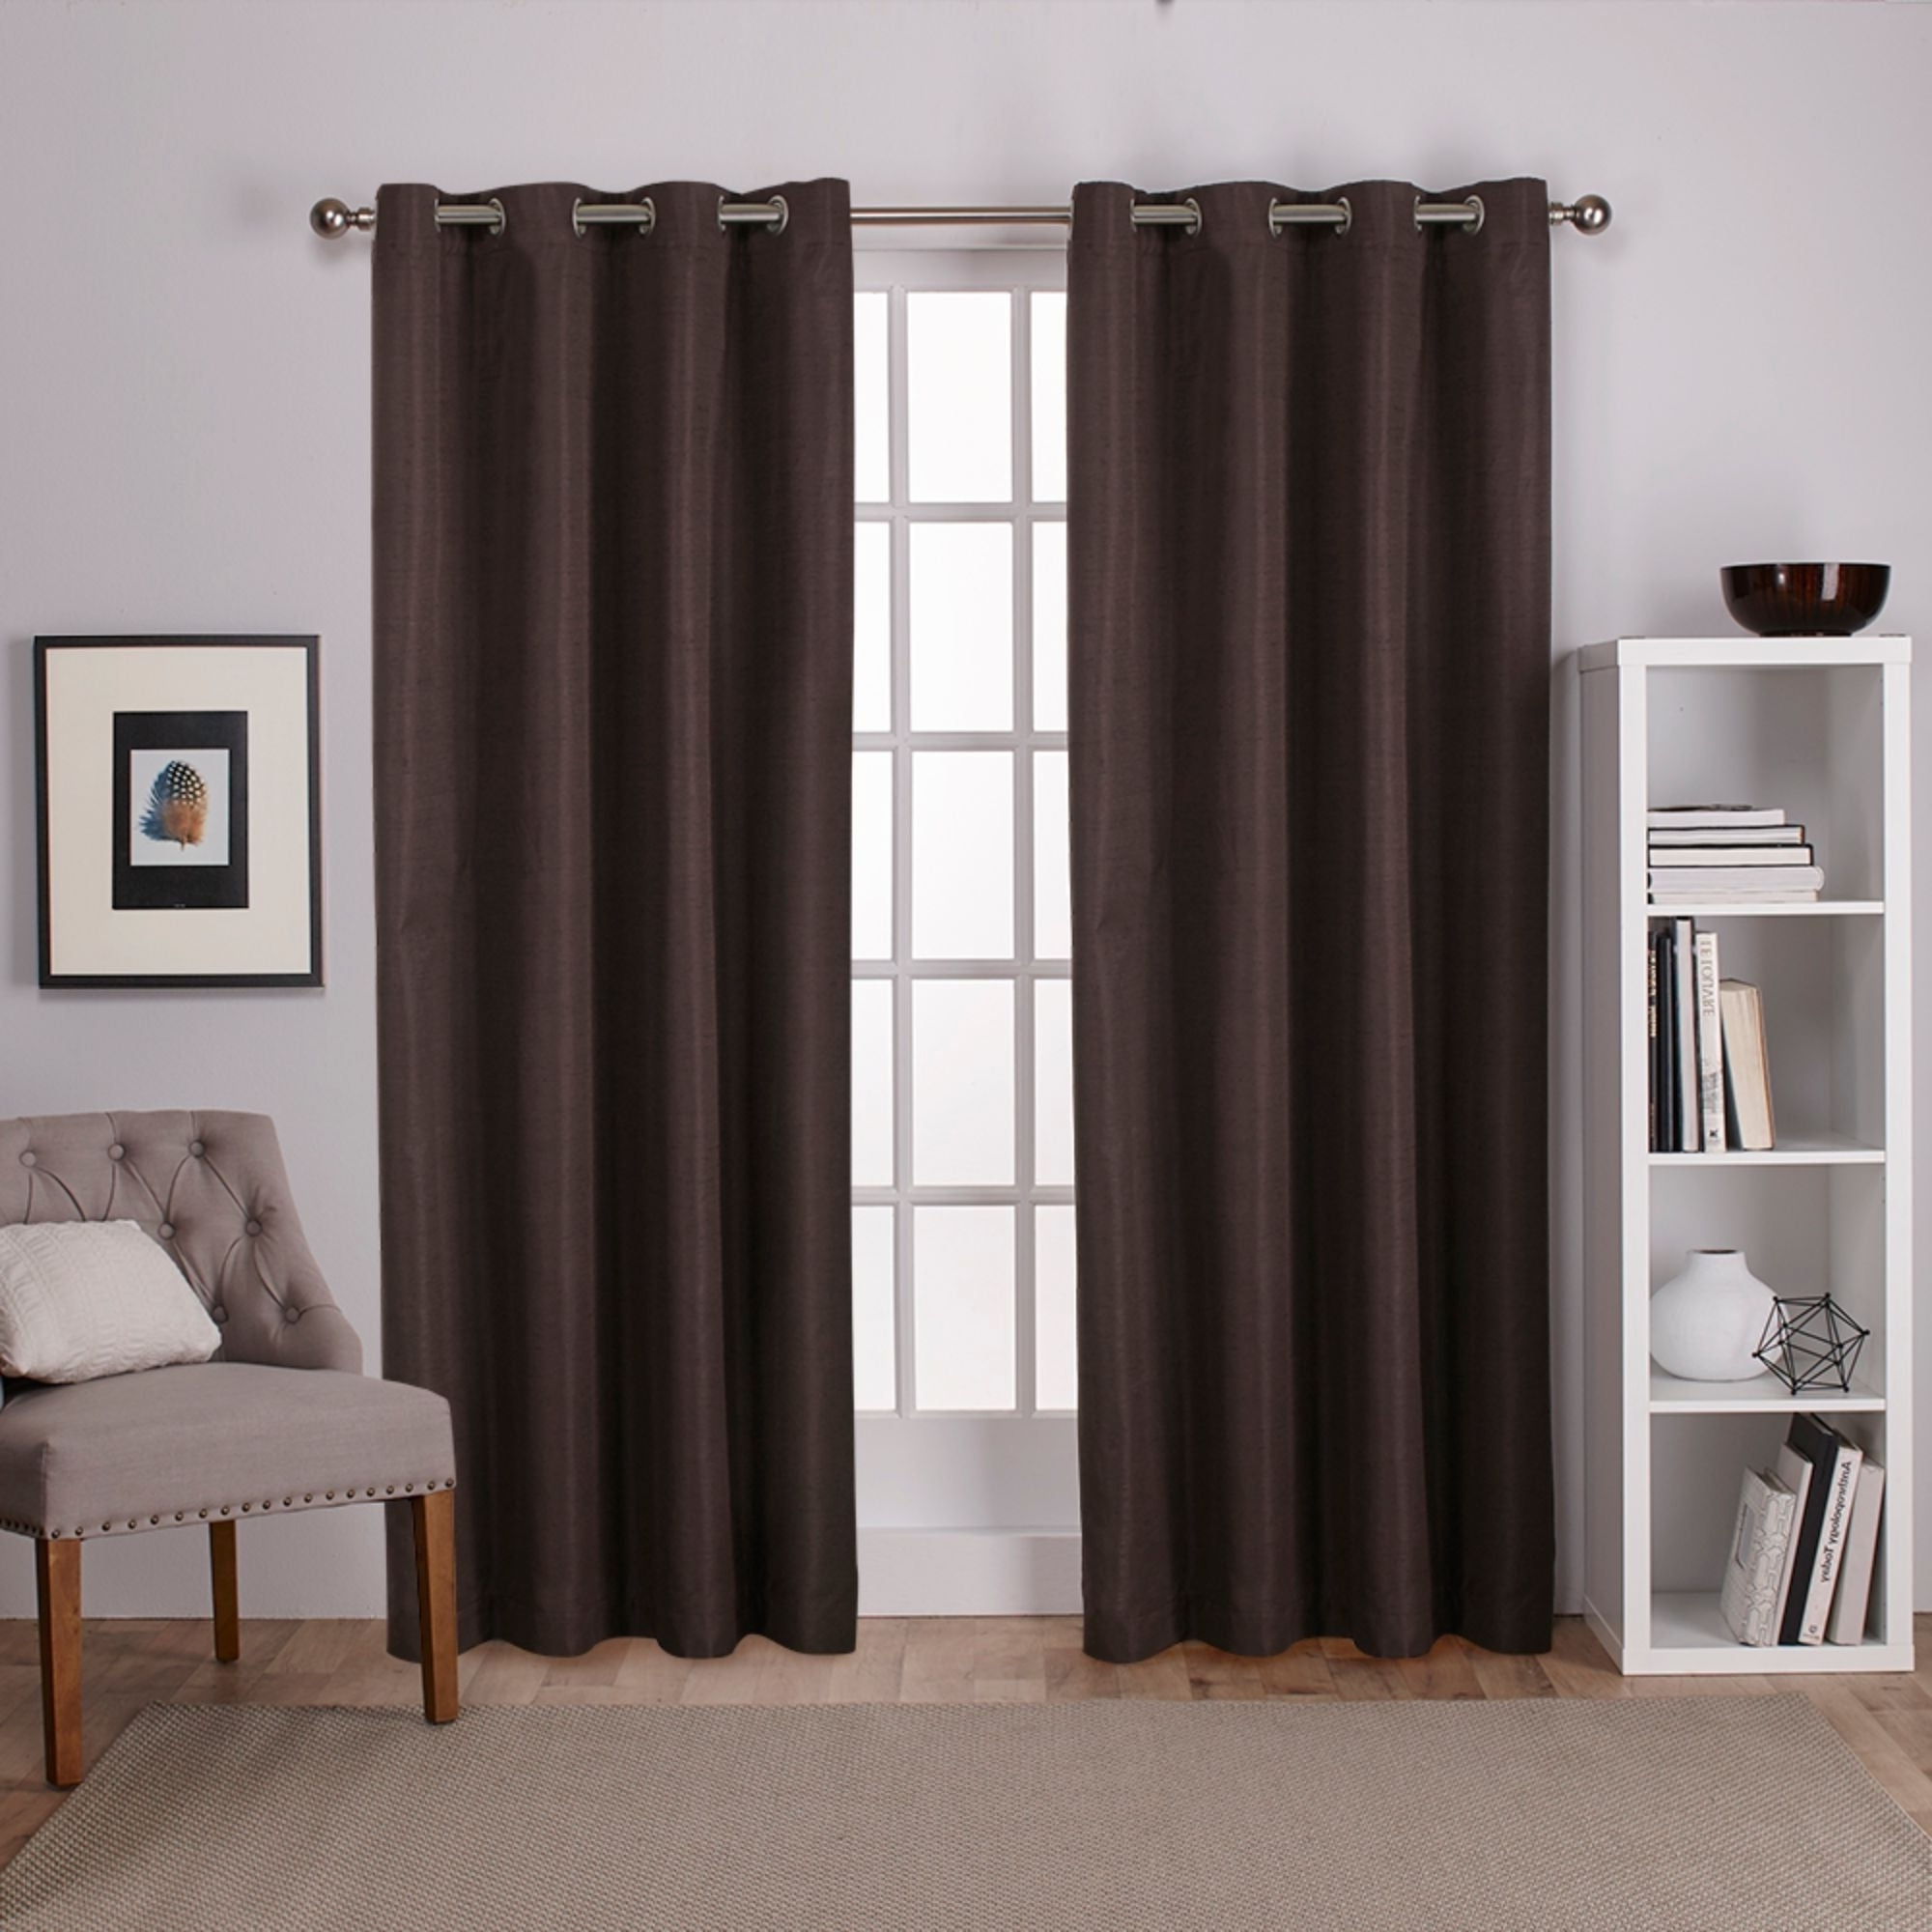 Raw Silk Thermal Insulated Grommet Top Curtain Panel Pairs Pertaining To Current Porch & Den Patchen Raw Silk Thermal Insulated Grommet Top Curtain Panel  Pair (Gallery 3 of 20)